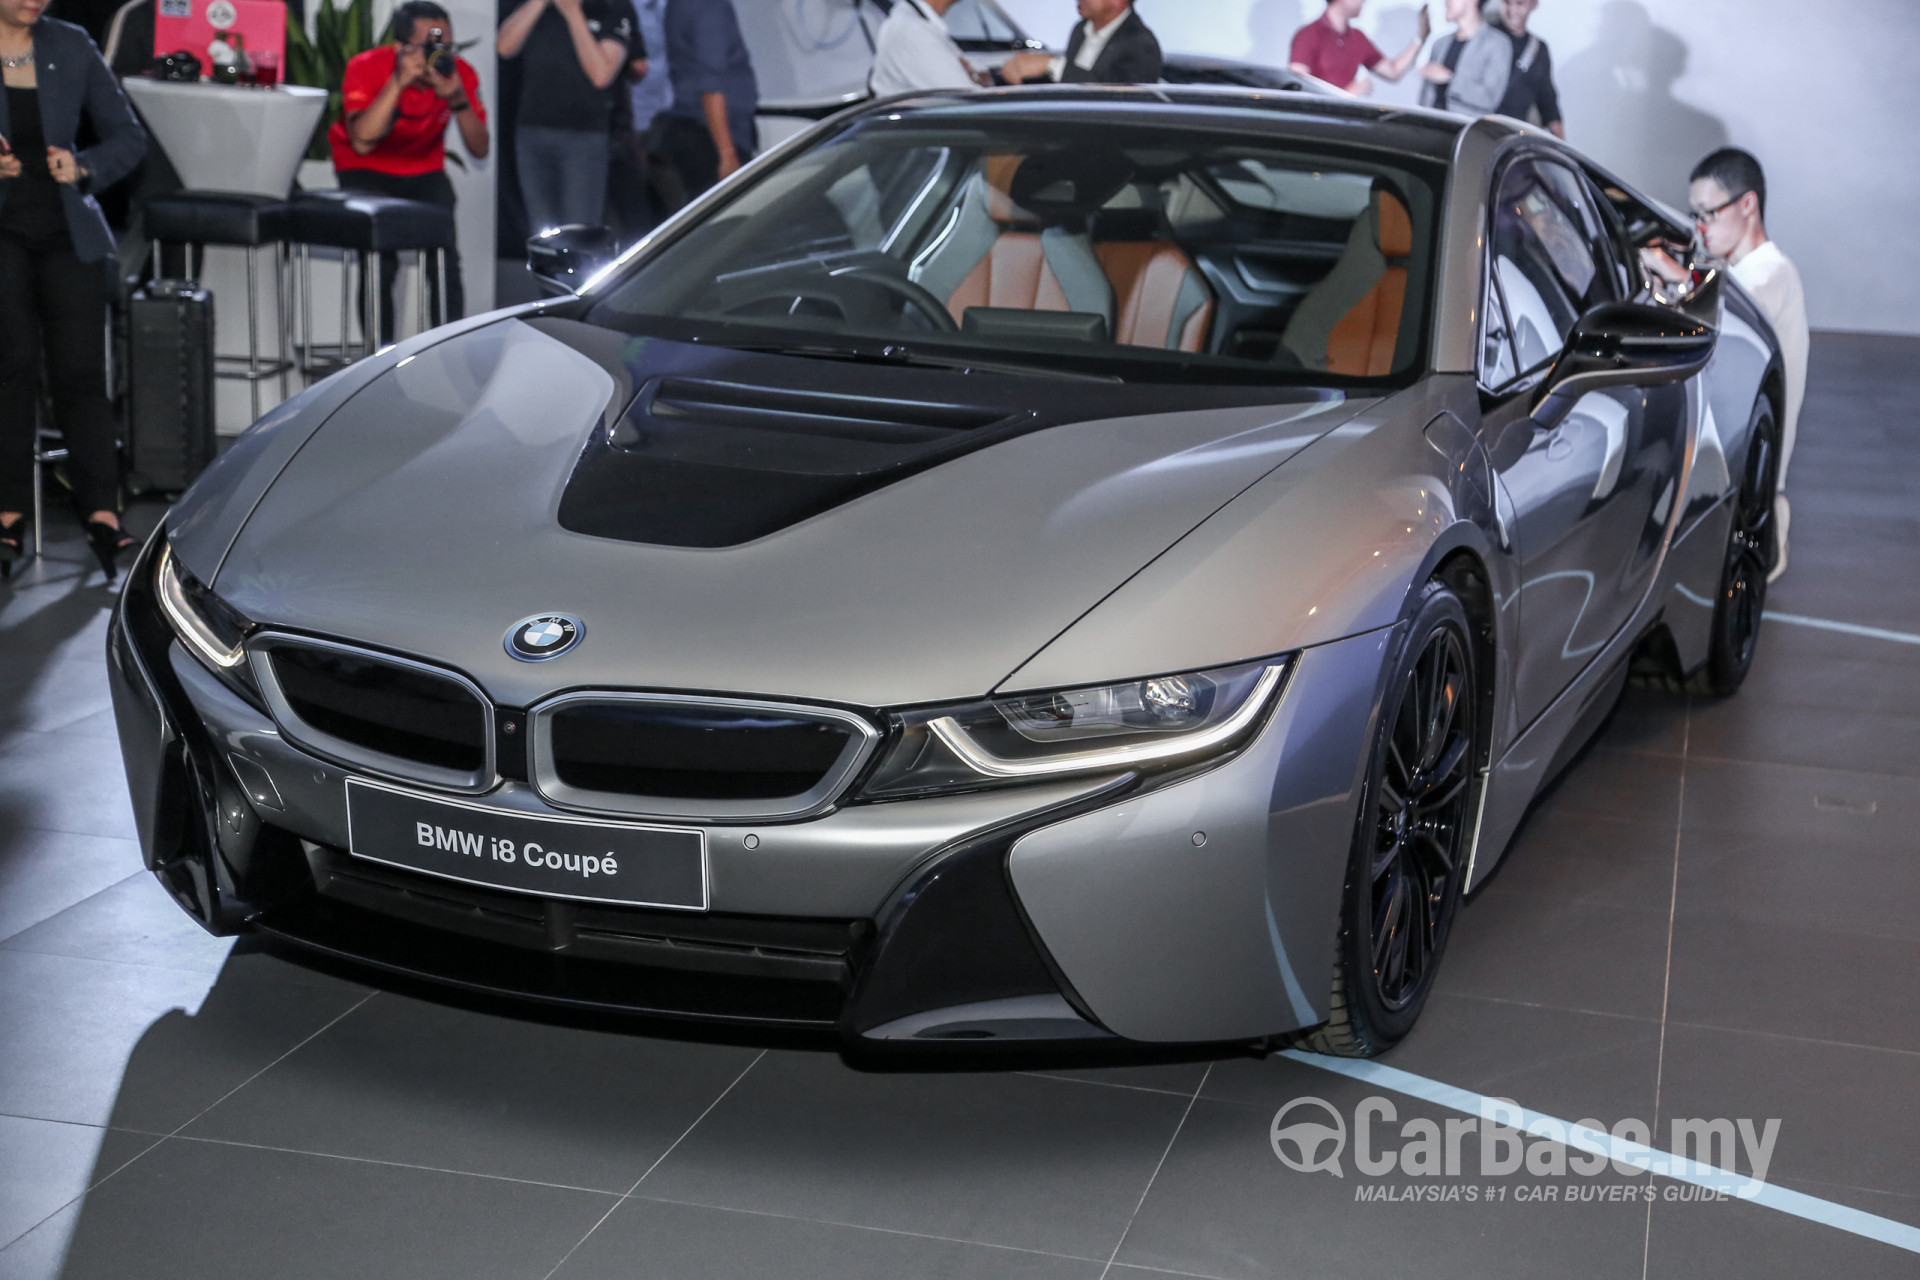 Bmw I8 Coupe I12 Lci 2018 Exterior Image In Malaysia Reviews